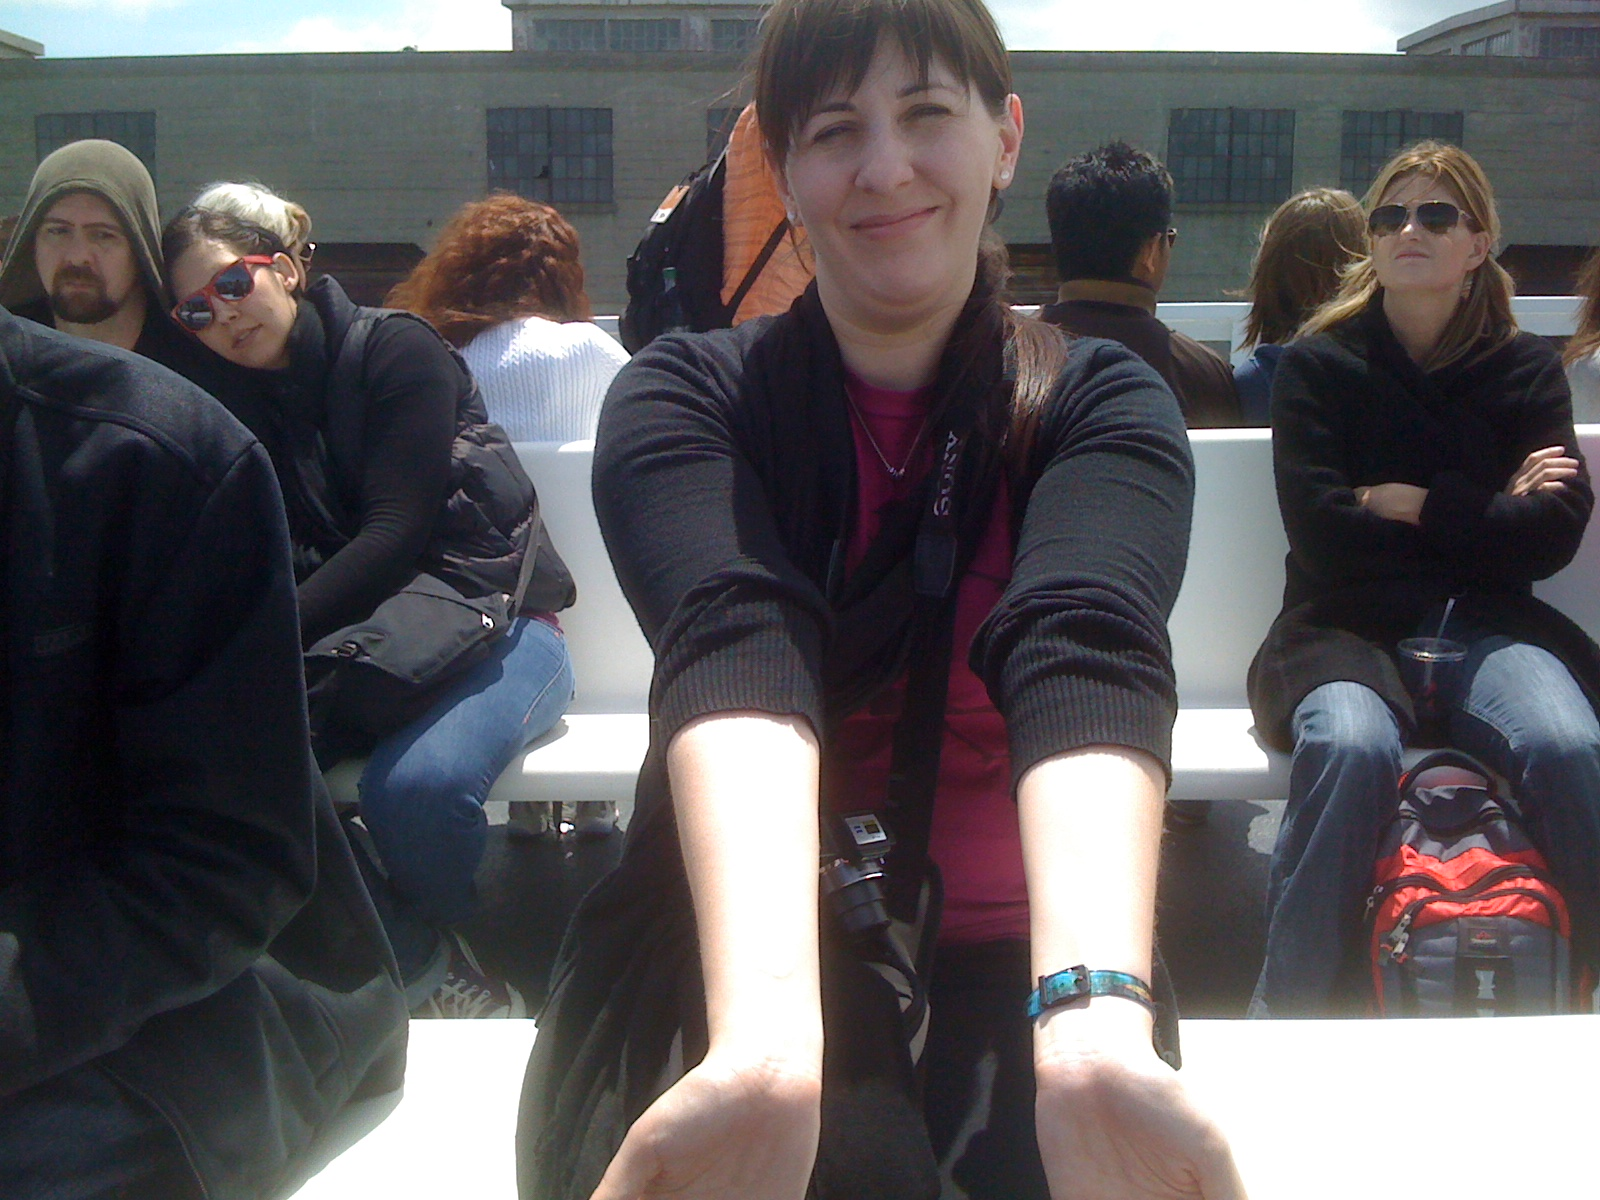 Jess helped invent a new superpower---the Blinding Wrists!